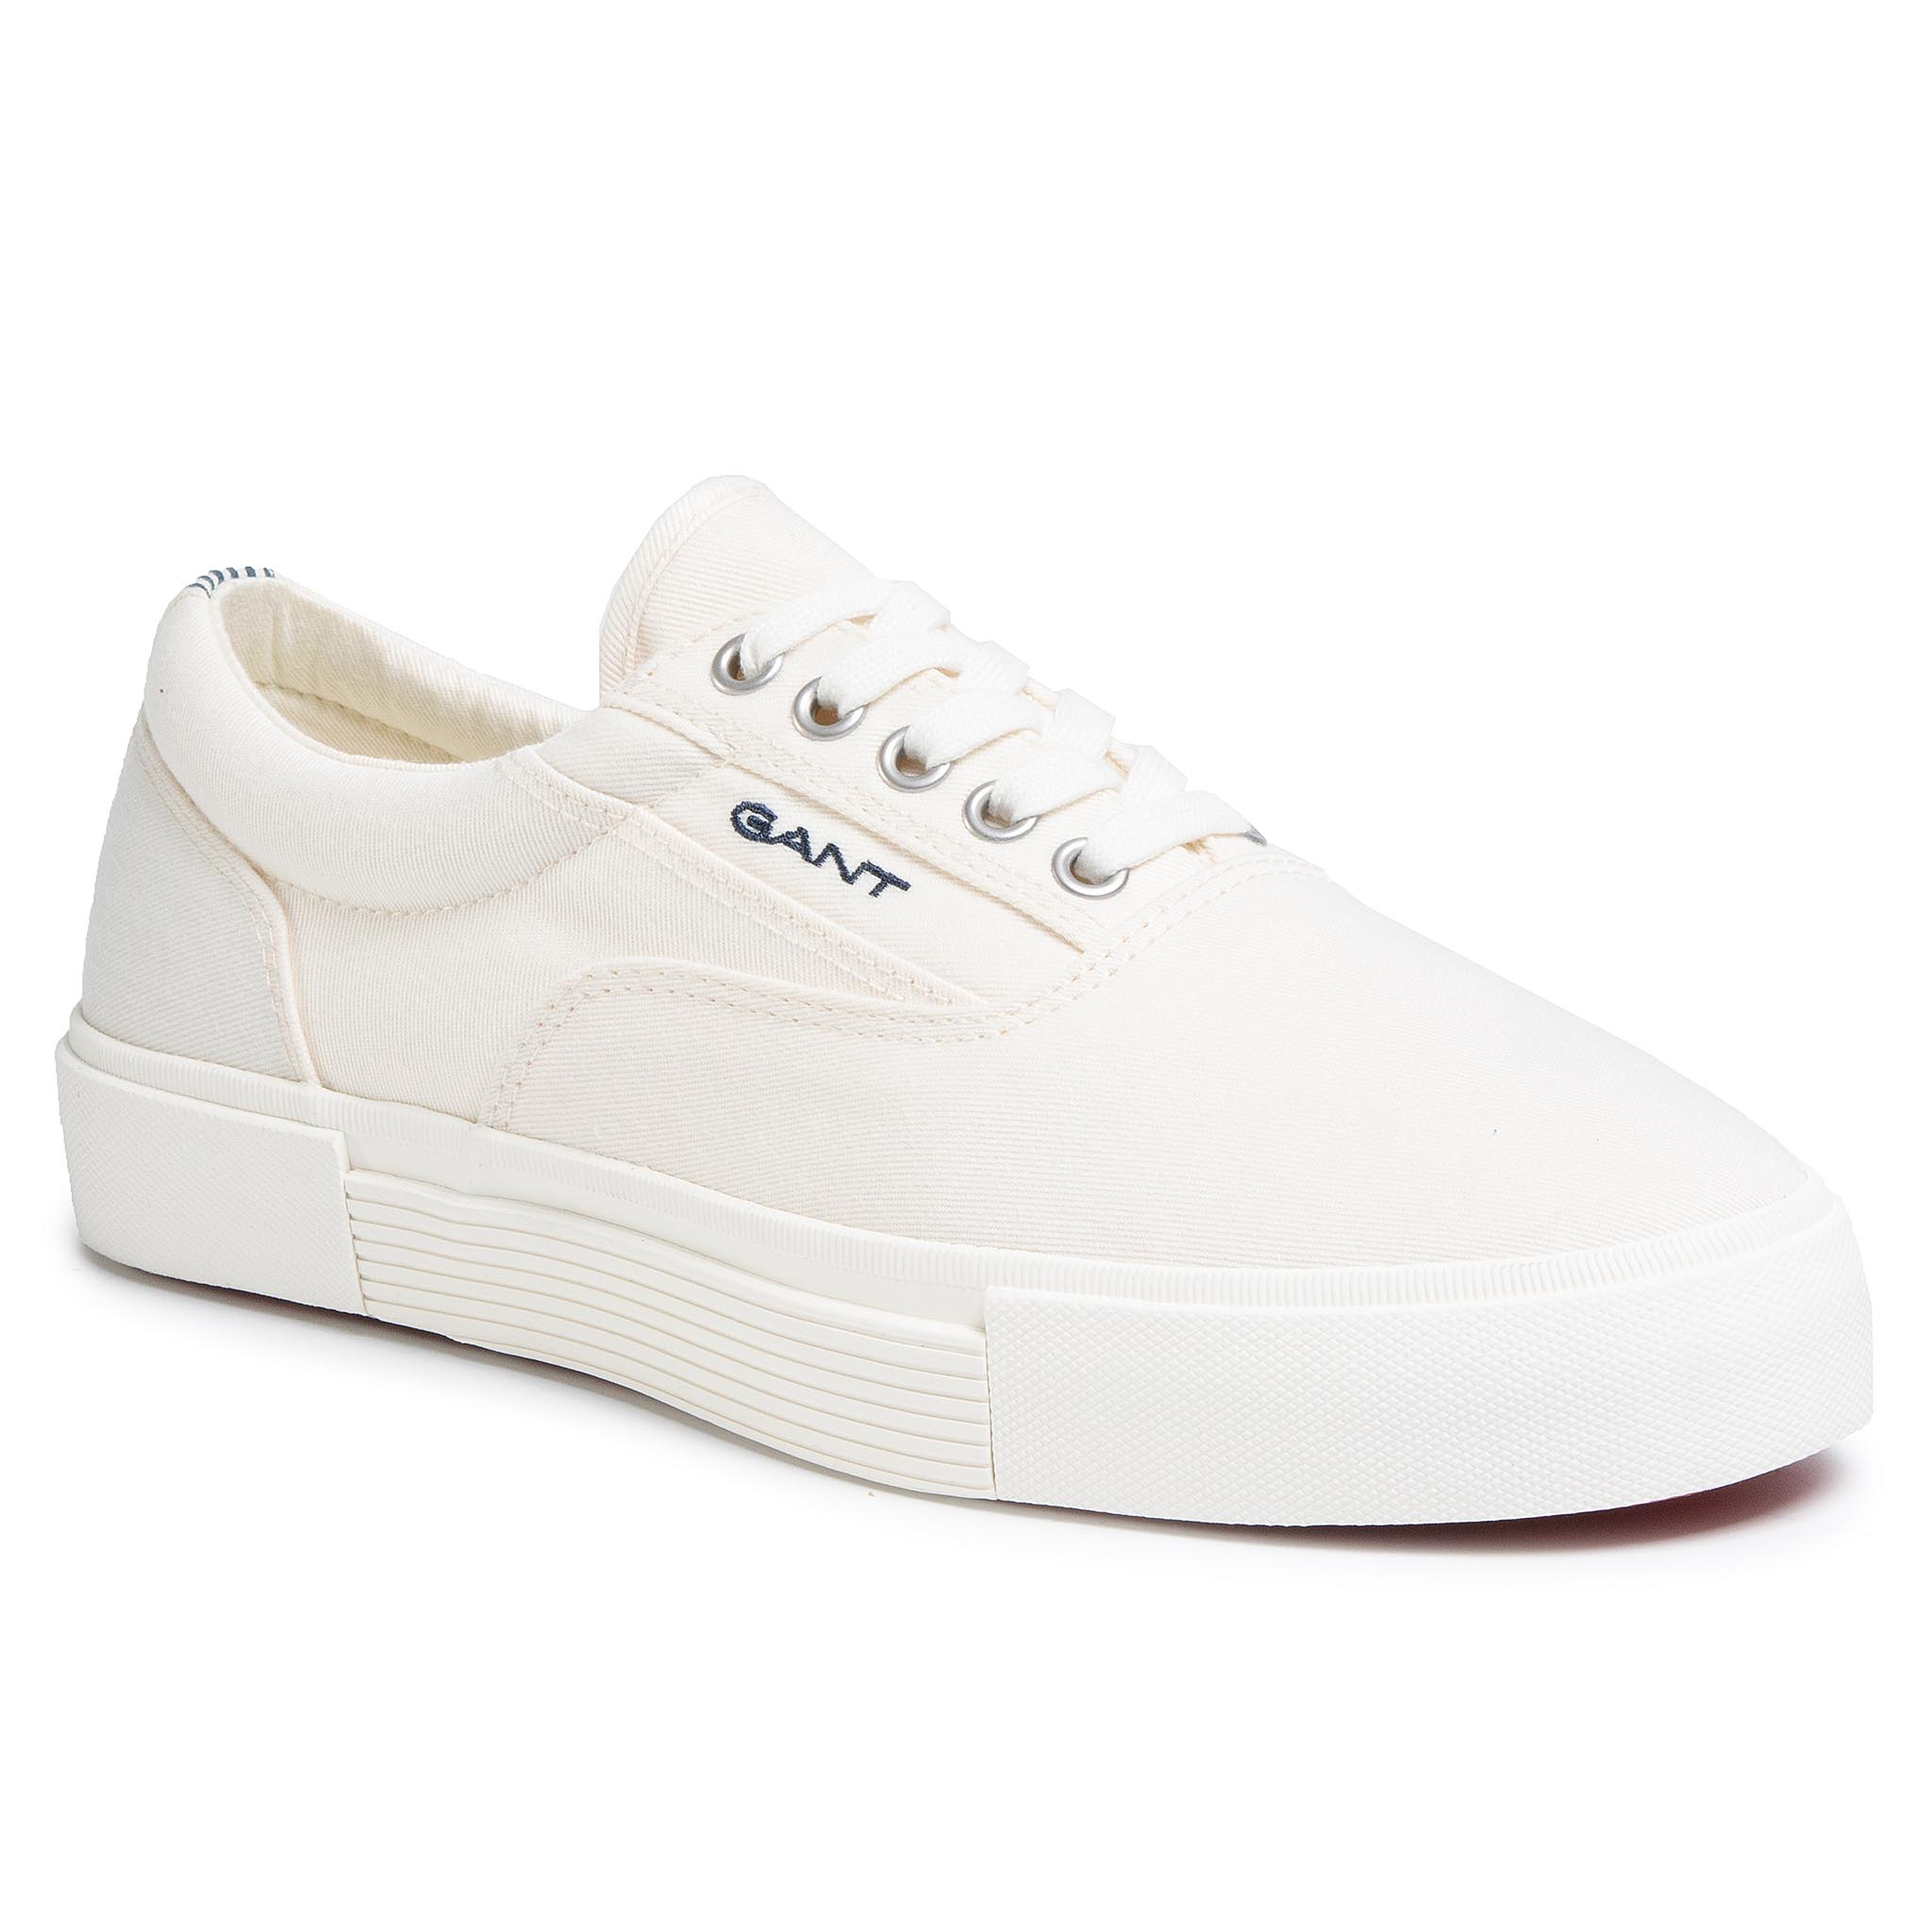 Sneakers GANT - Champroyal 20638413 Off White G20